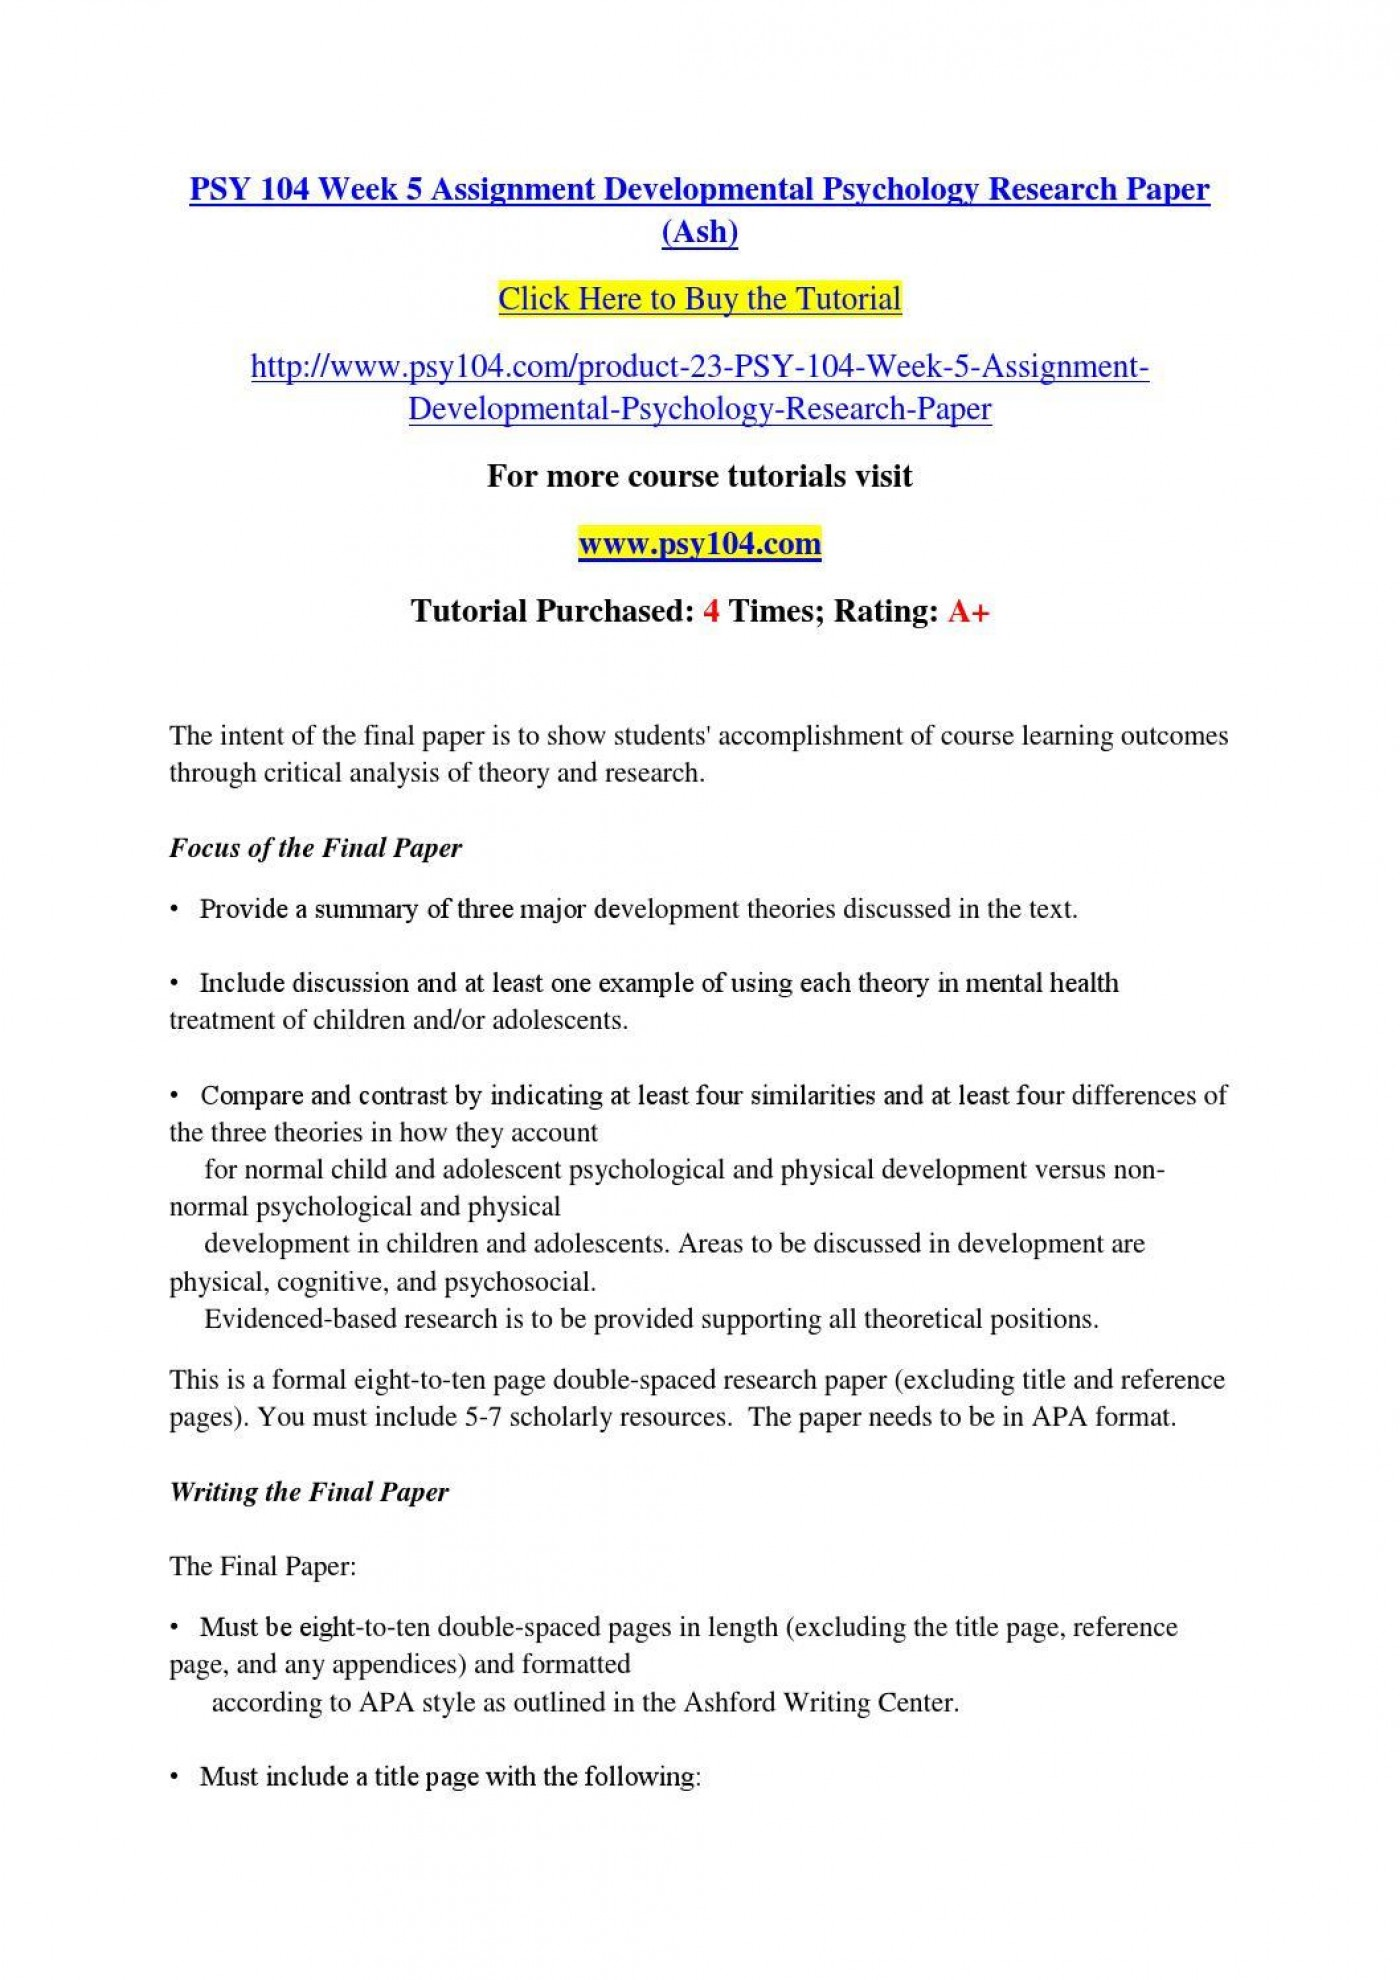 017 Developmental Psychology Essay Ideas Structure Psychological20ent Paper Topics Pdf20 Shocking Research Topic For College Students Computer Science Nursing 1400